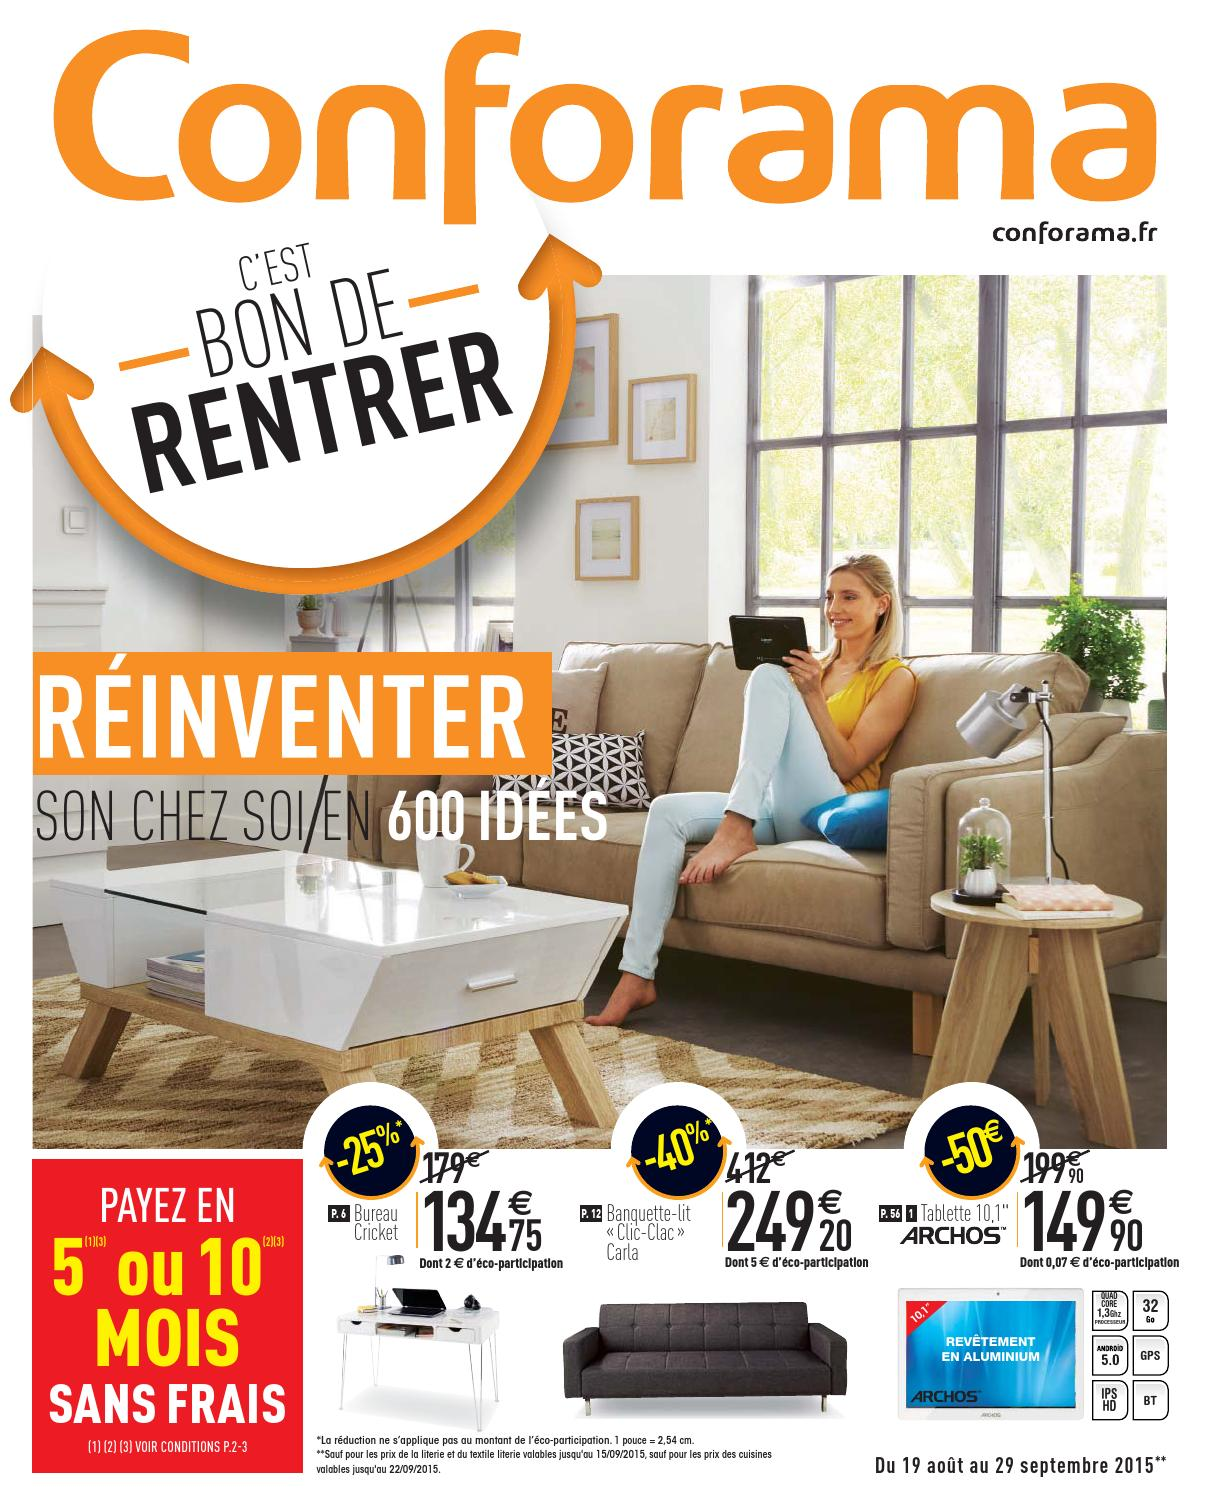 Conforama catalogue 19aout 29septembre2015 by ...